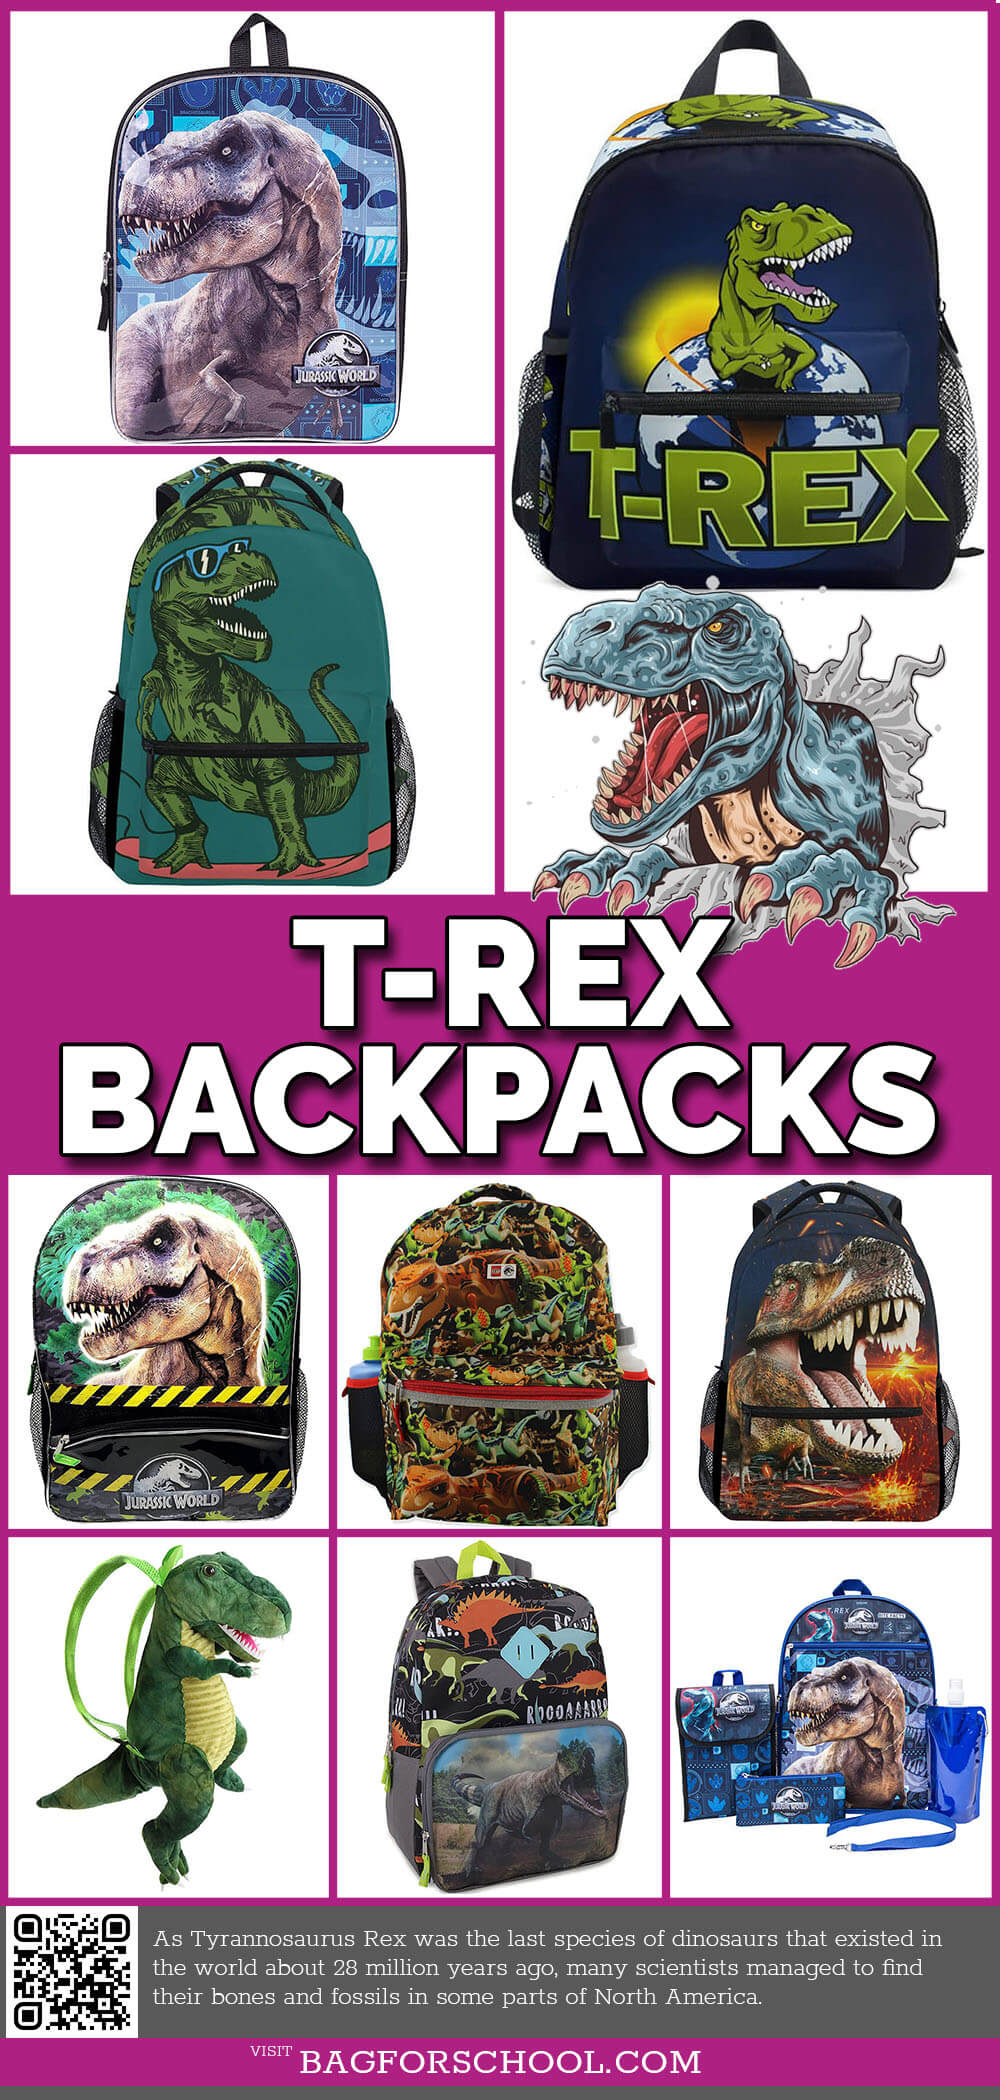 T-Rex-Backpacks